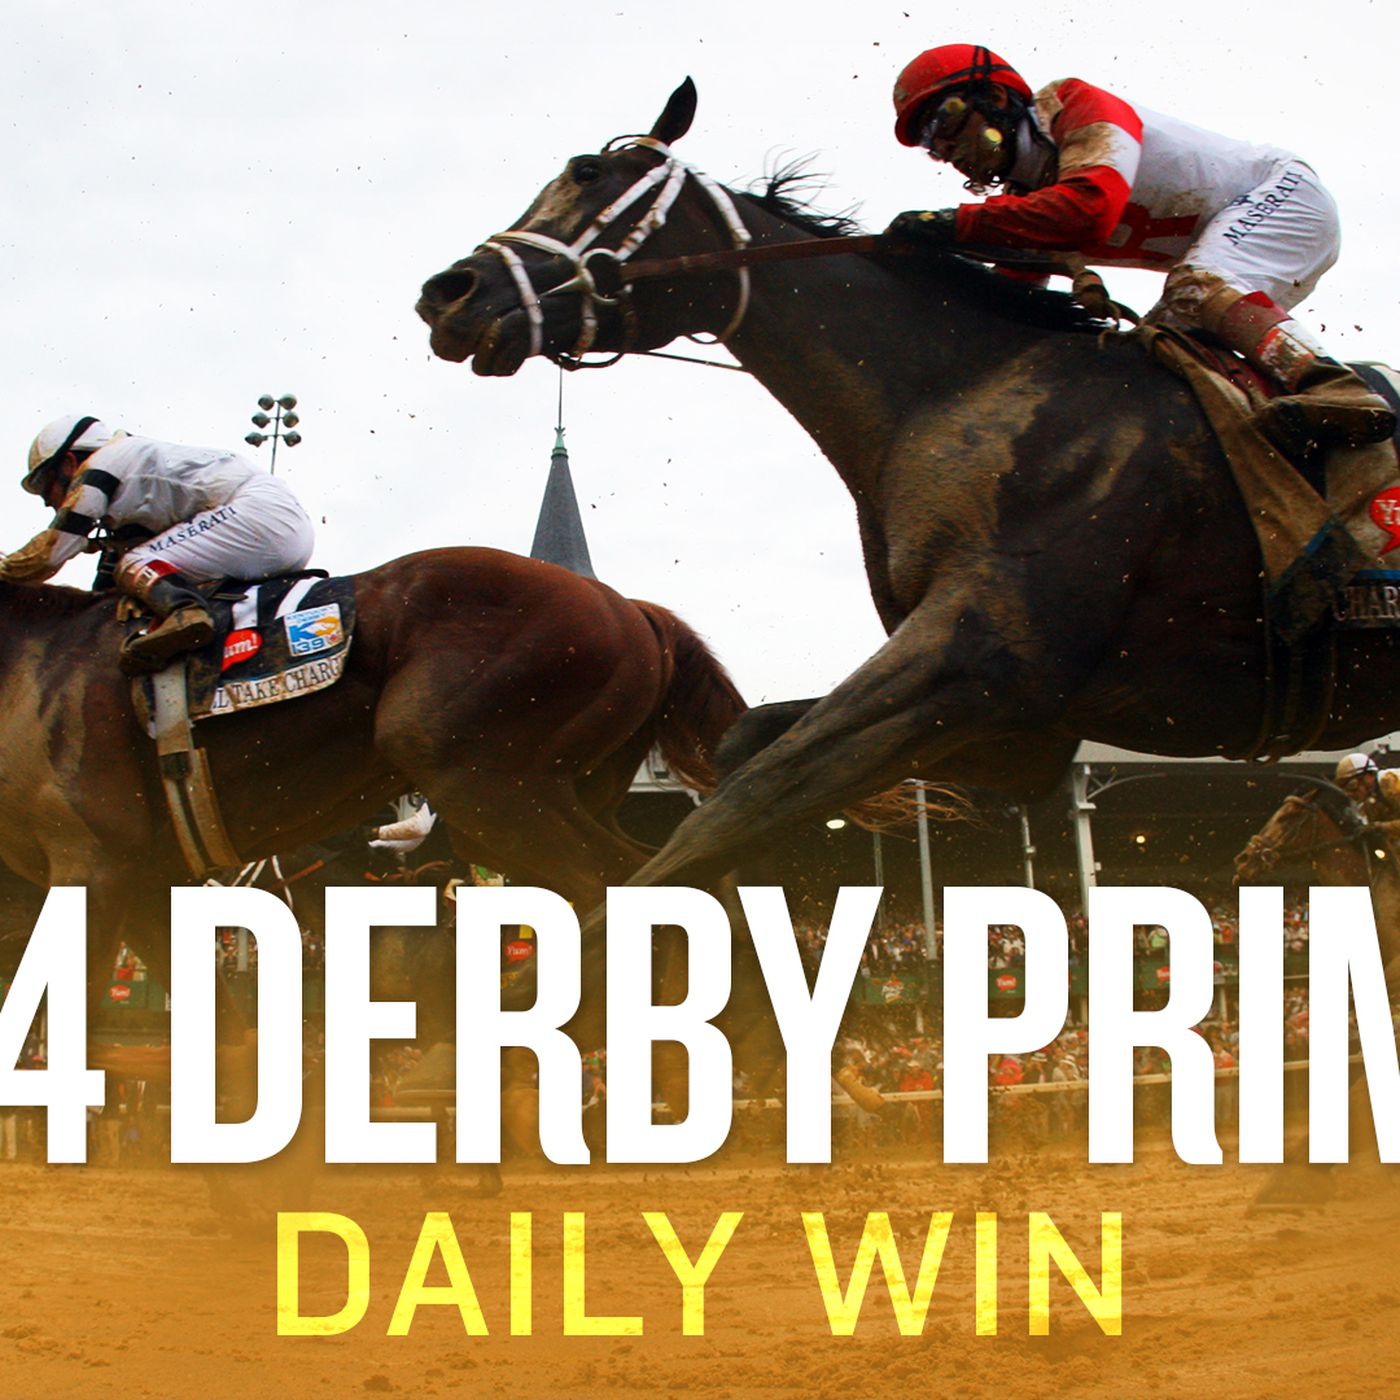 Daily Win: 2014 Kentucky Derby preview, odds, and sleepers